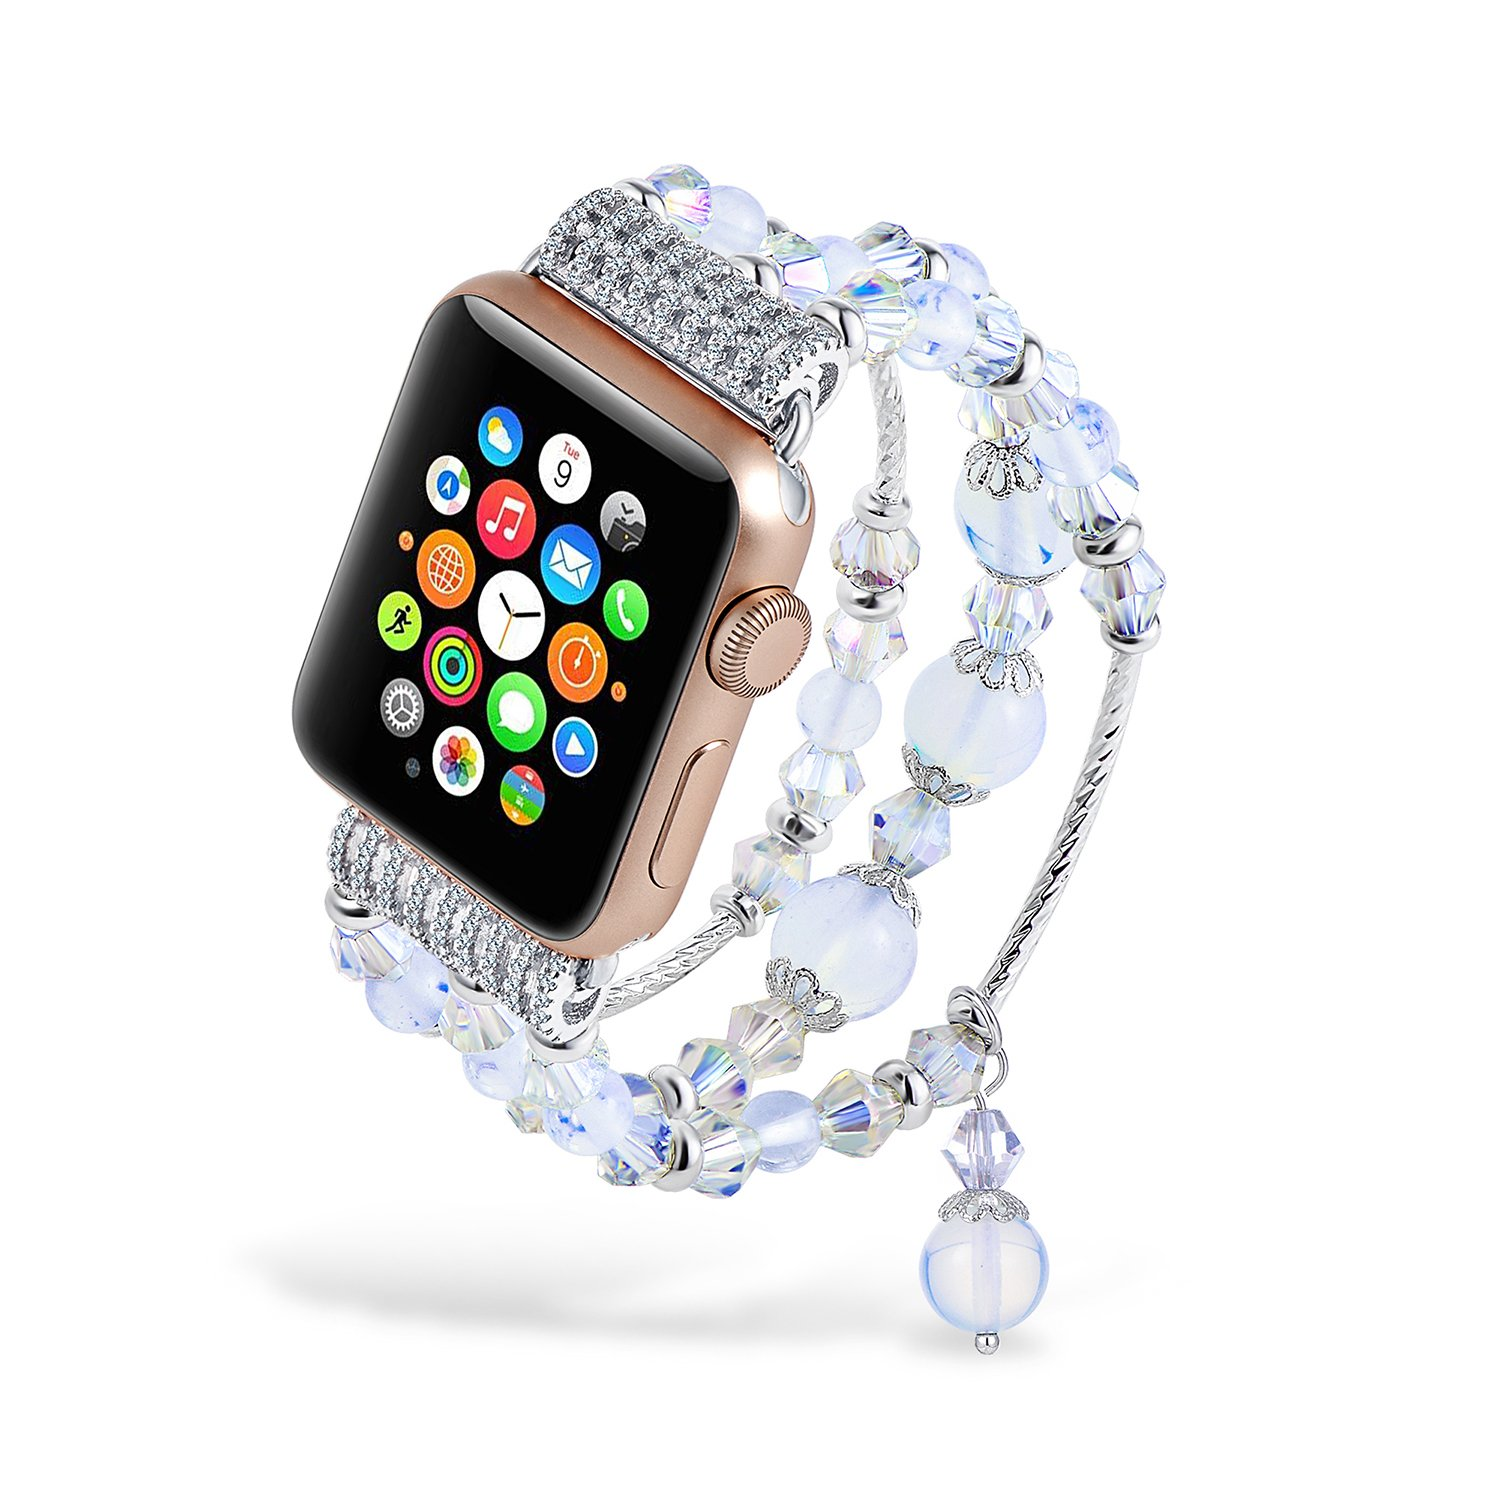 Handmade iWatch Band Luxury Crystal Beaded Opal Wristband No Buckle for Apple Watch Series 3 38mm Silver